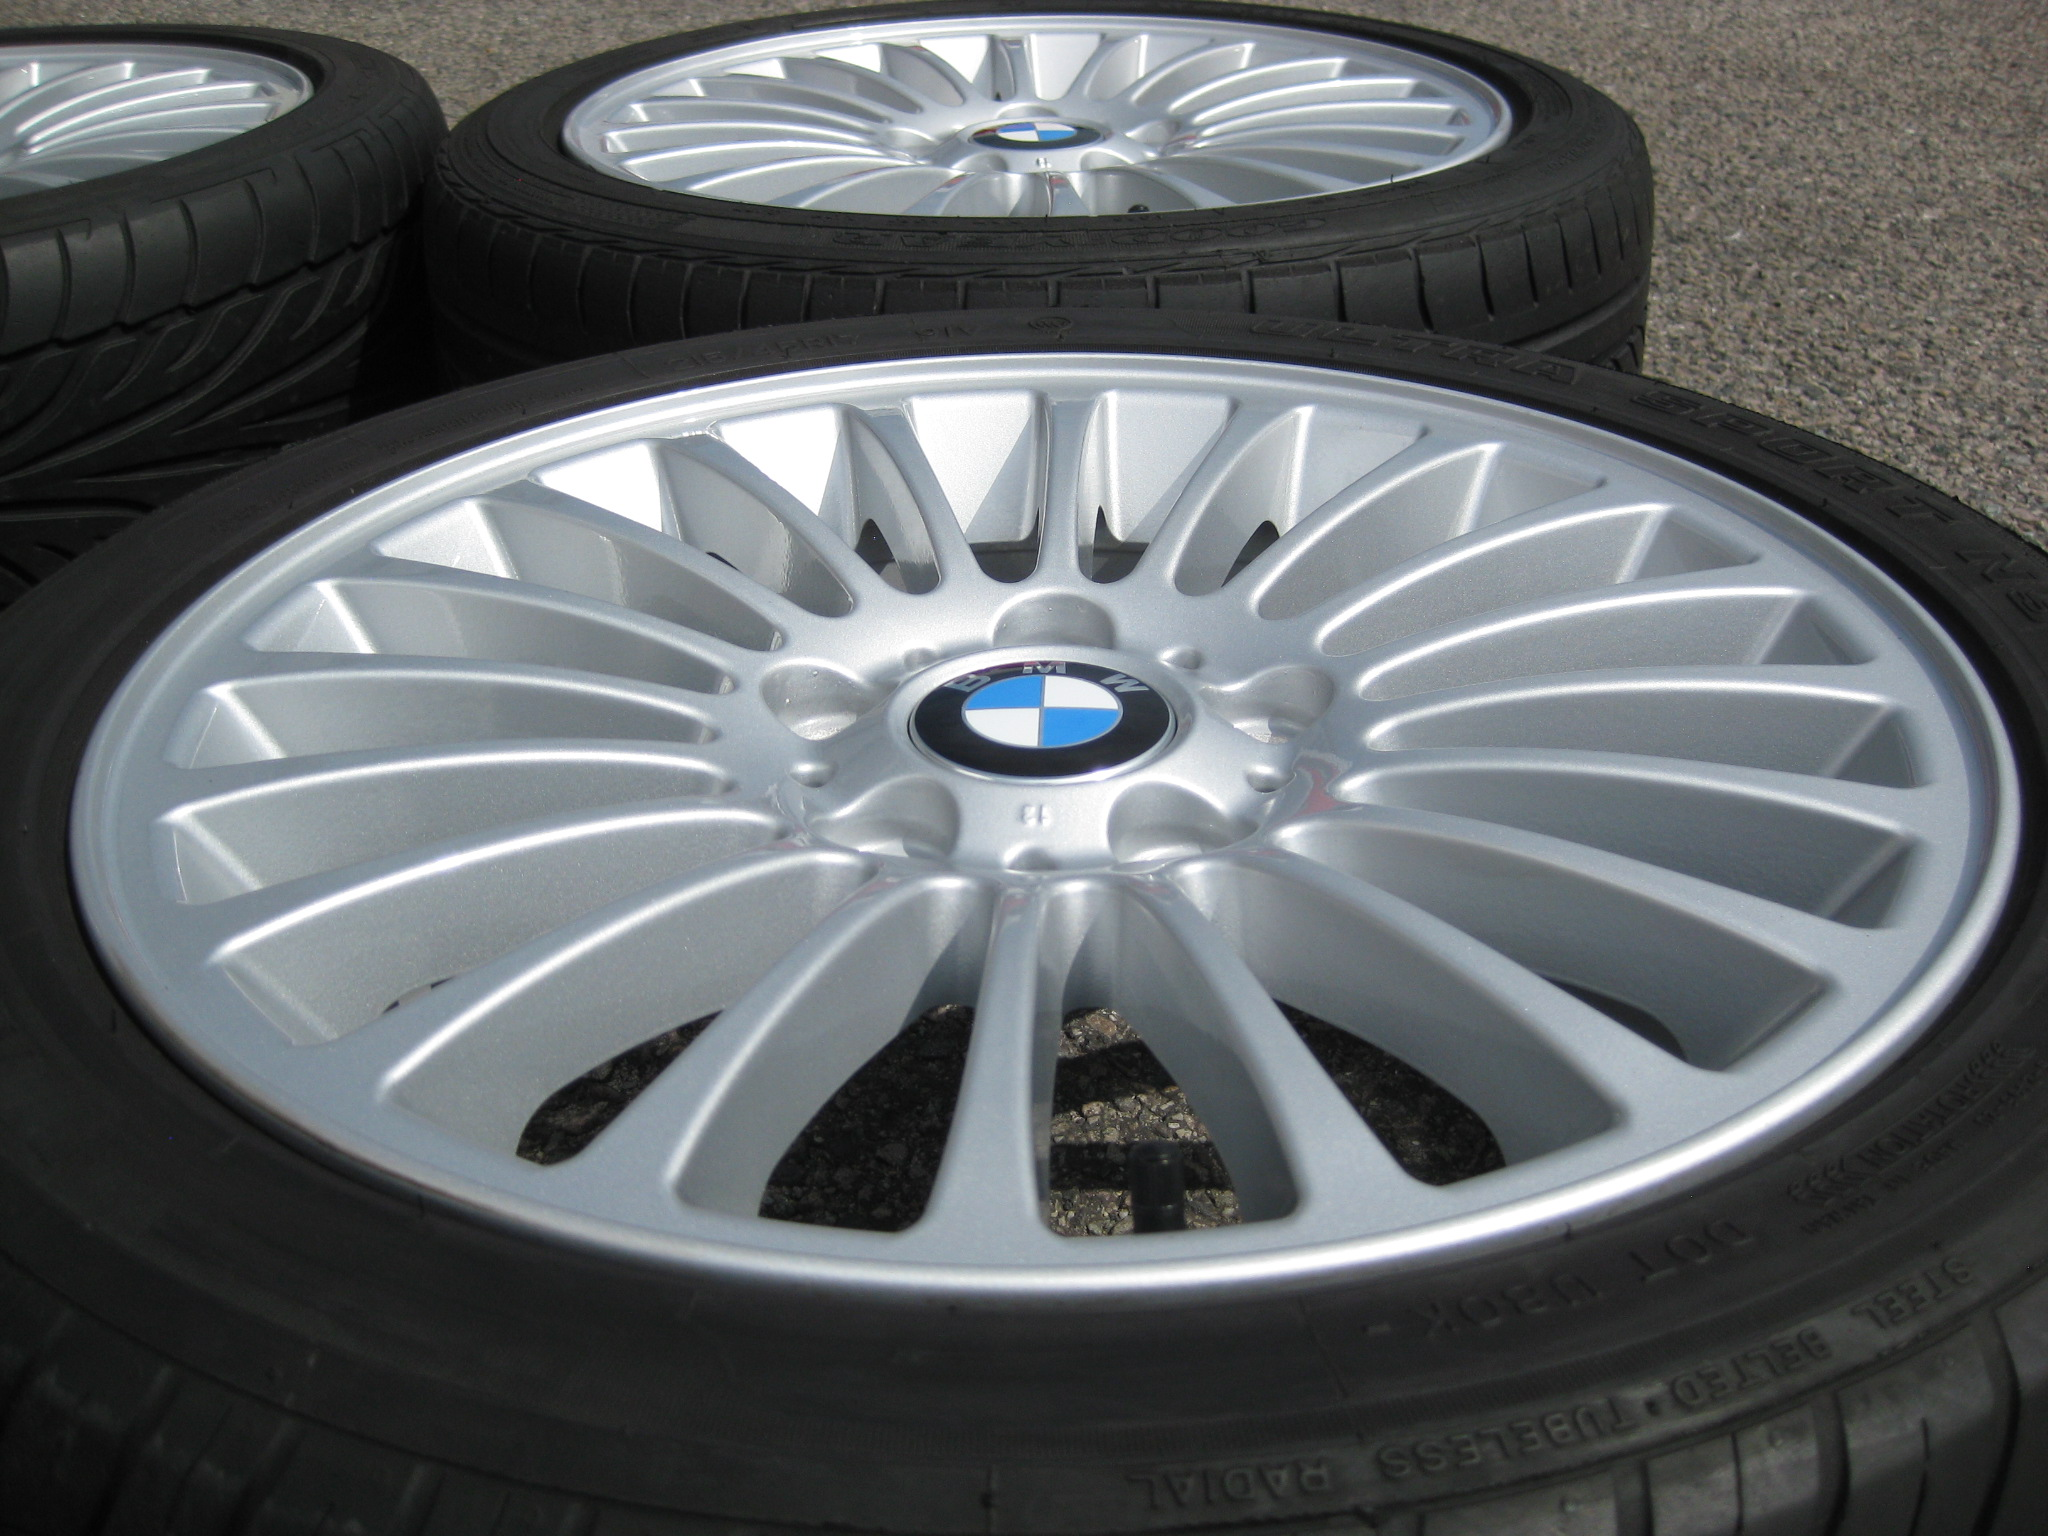 Used 17 Quot Genuine Style 73 Radial Spoke Alloys Fully